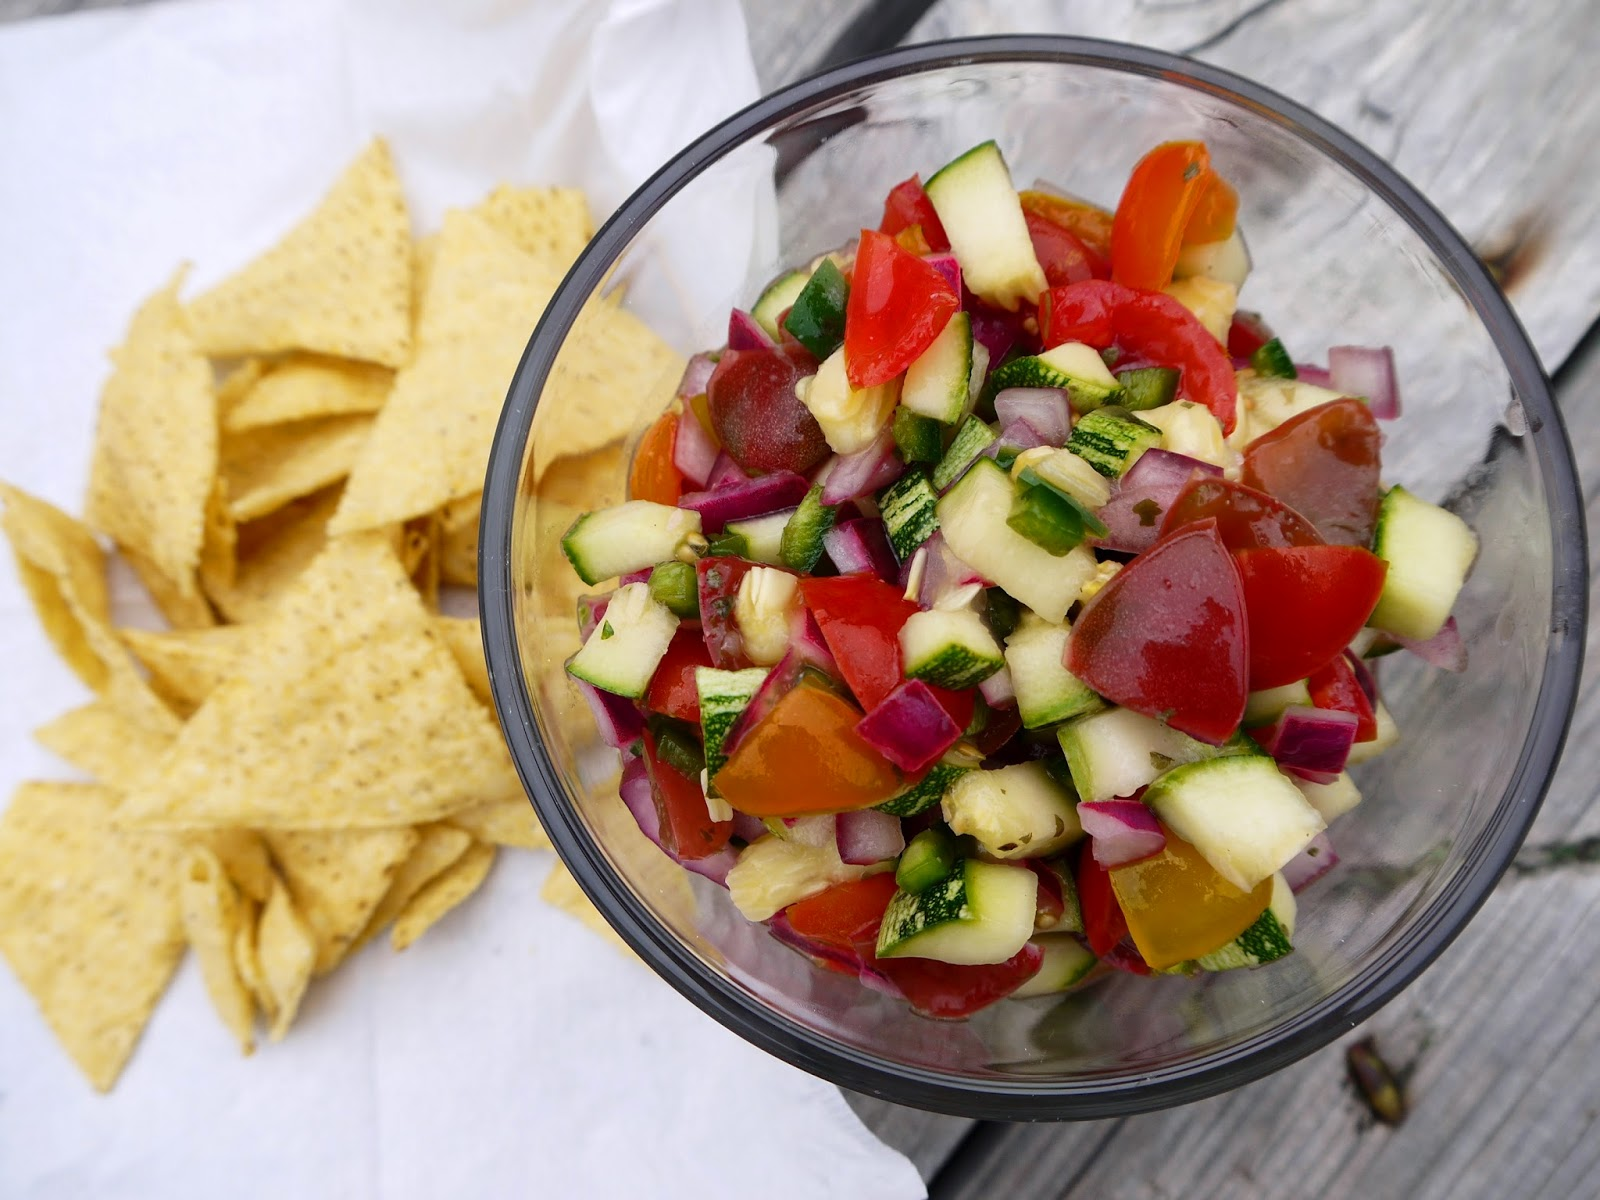 http://www.eat8020.com/2014/08/80-zucchini-and-heirloom-tomato-salsa.html